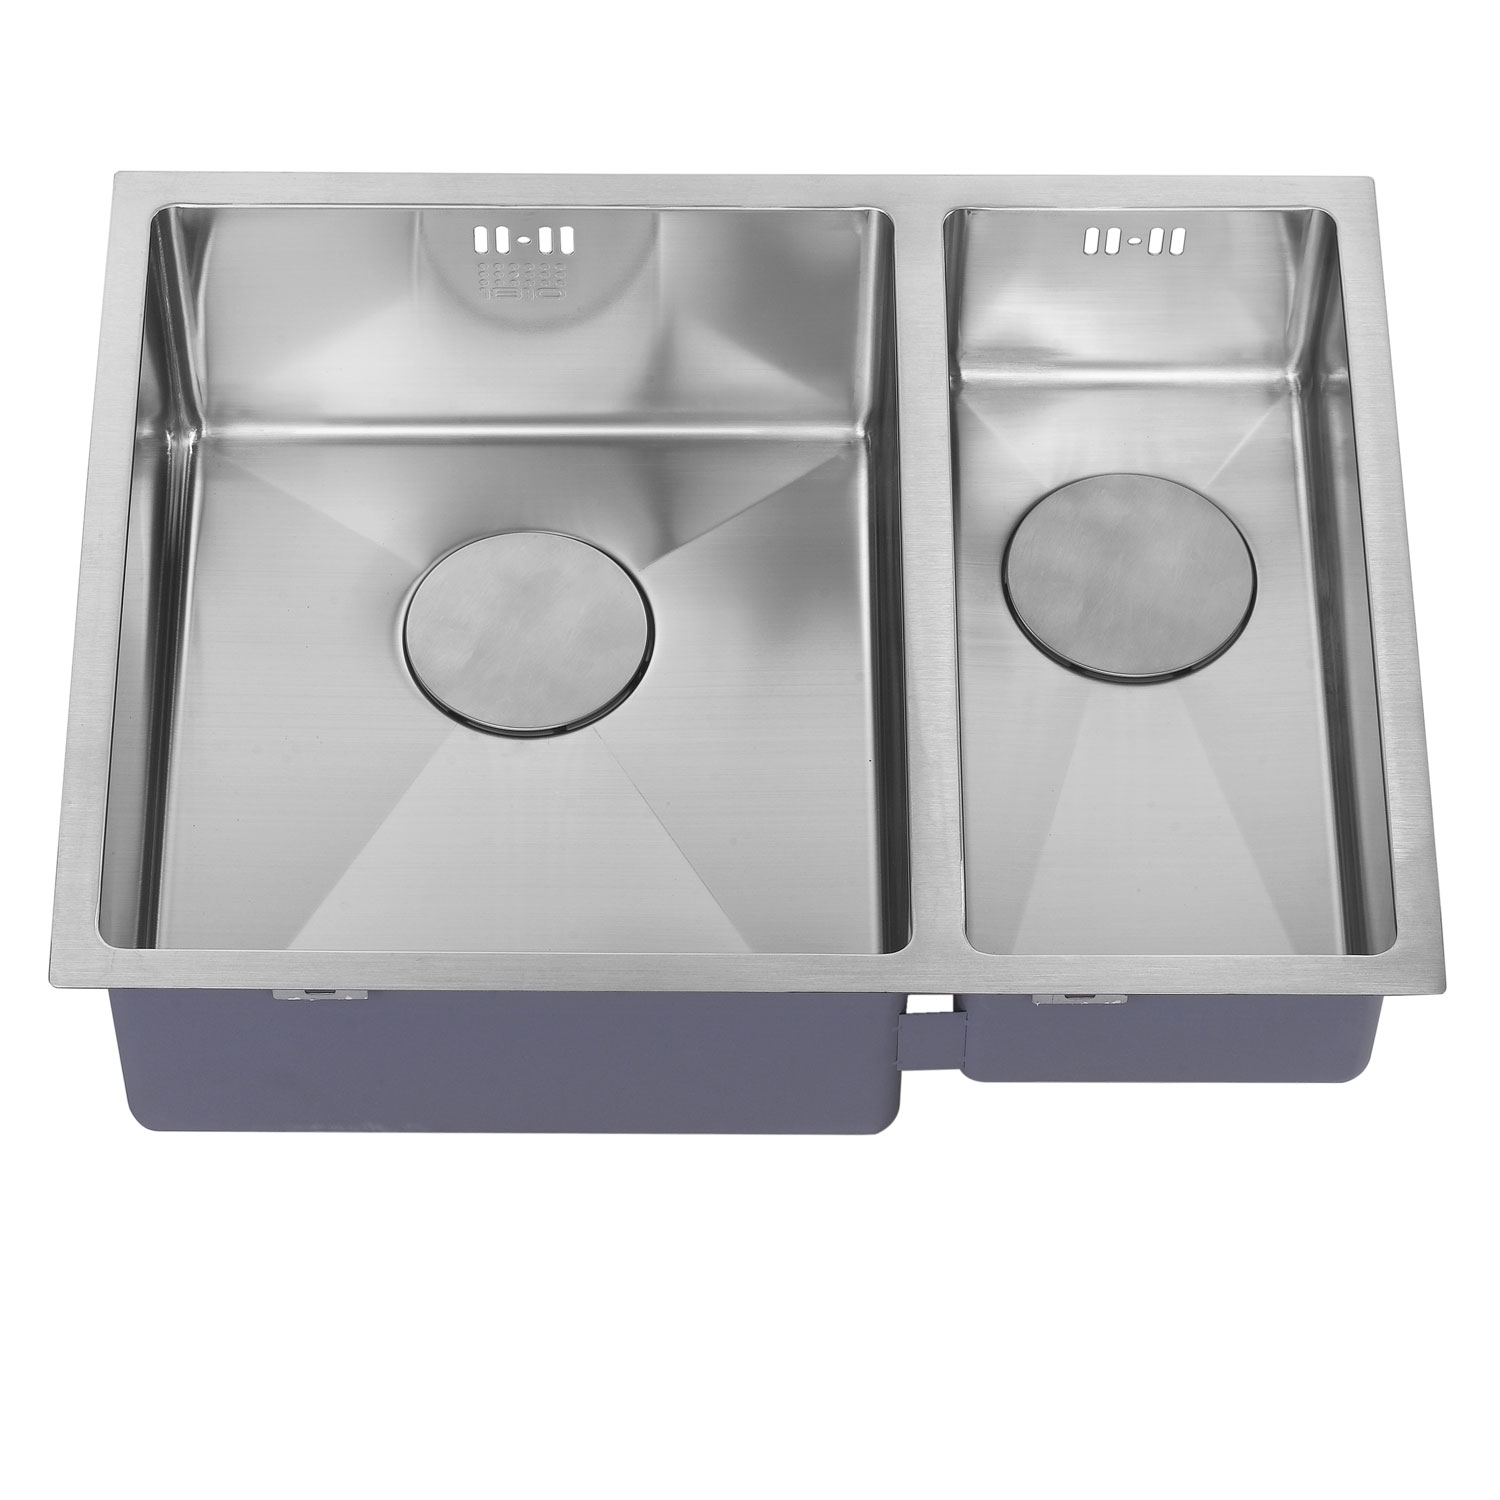 The 1810 Company Zenduo15 340/180U 1.5 Bowl Kitchen Sink - Left Handed